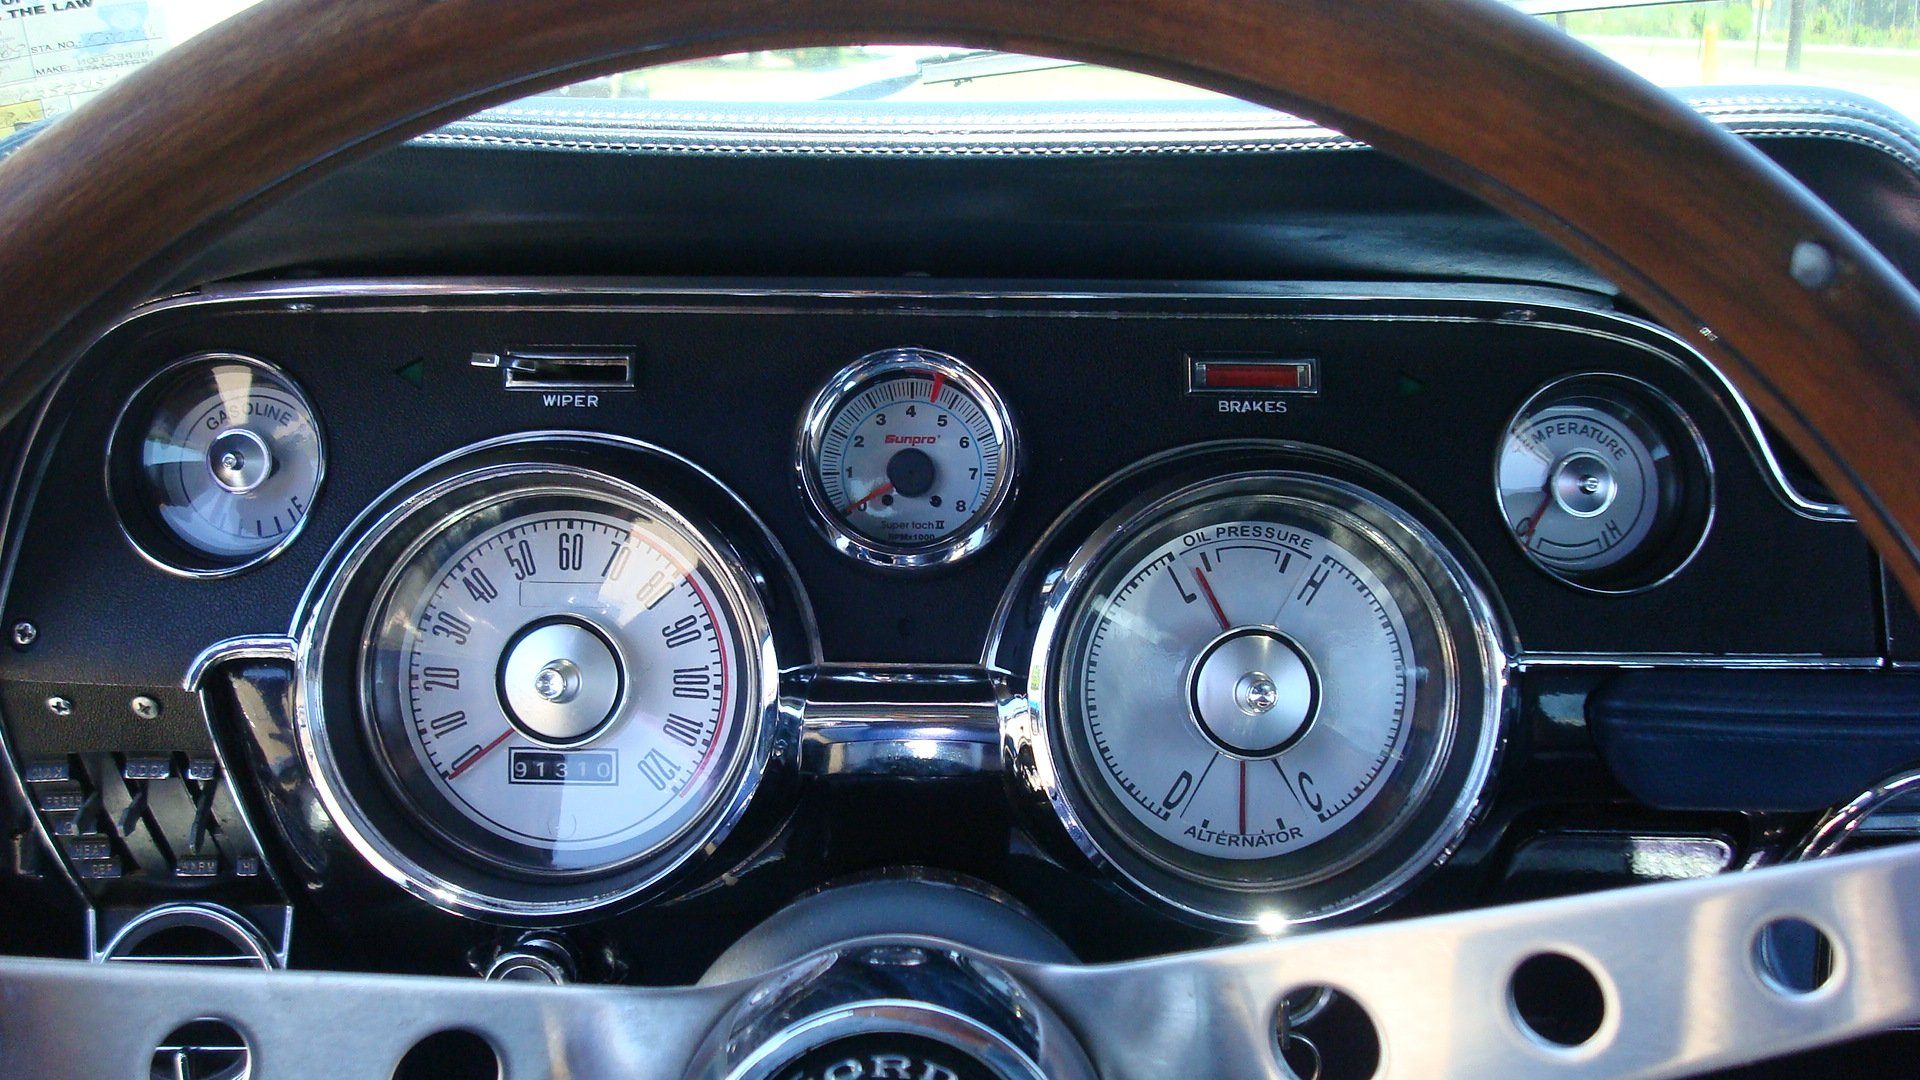 336481d1397871083 tachometer need help dsc05056 tachometer need help ford mustang forum on 1967 mustang tach wiring